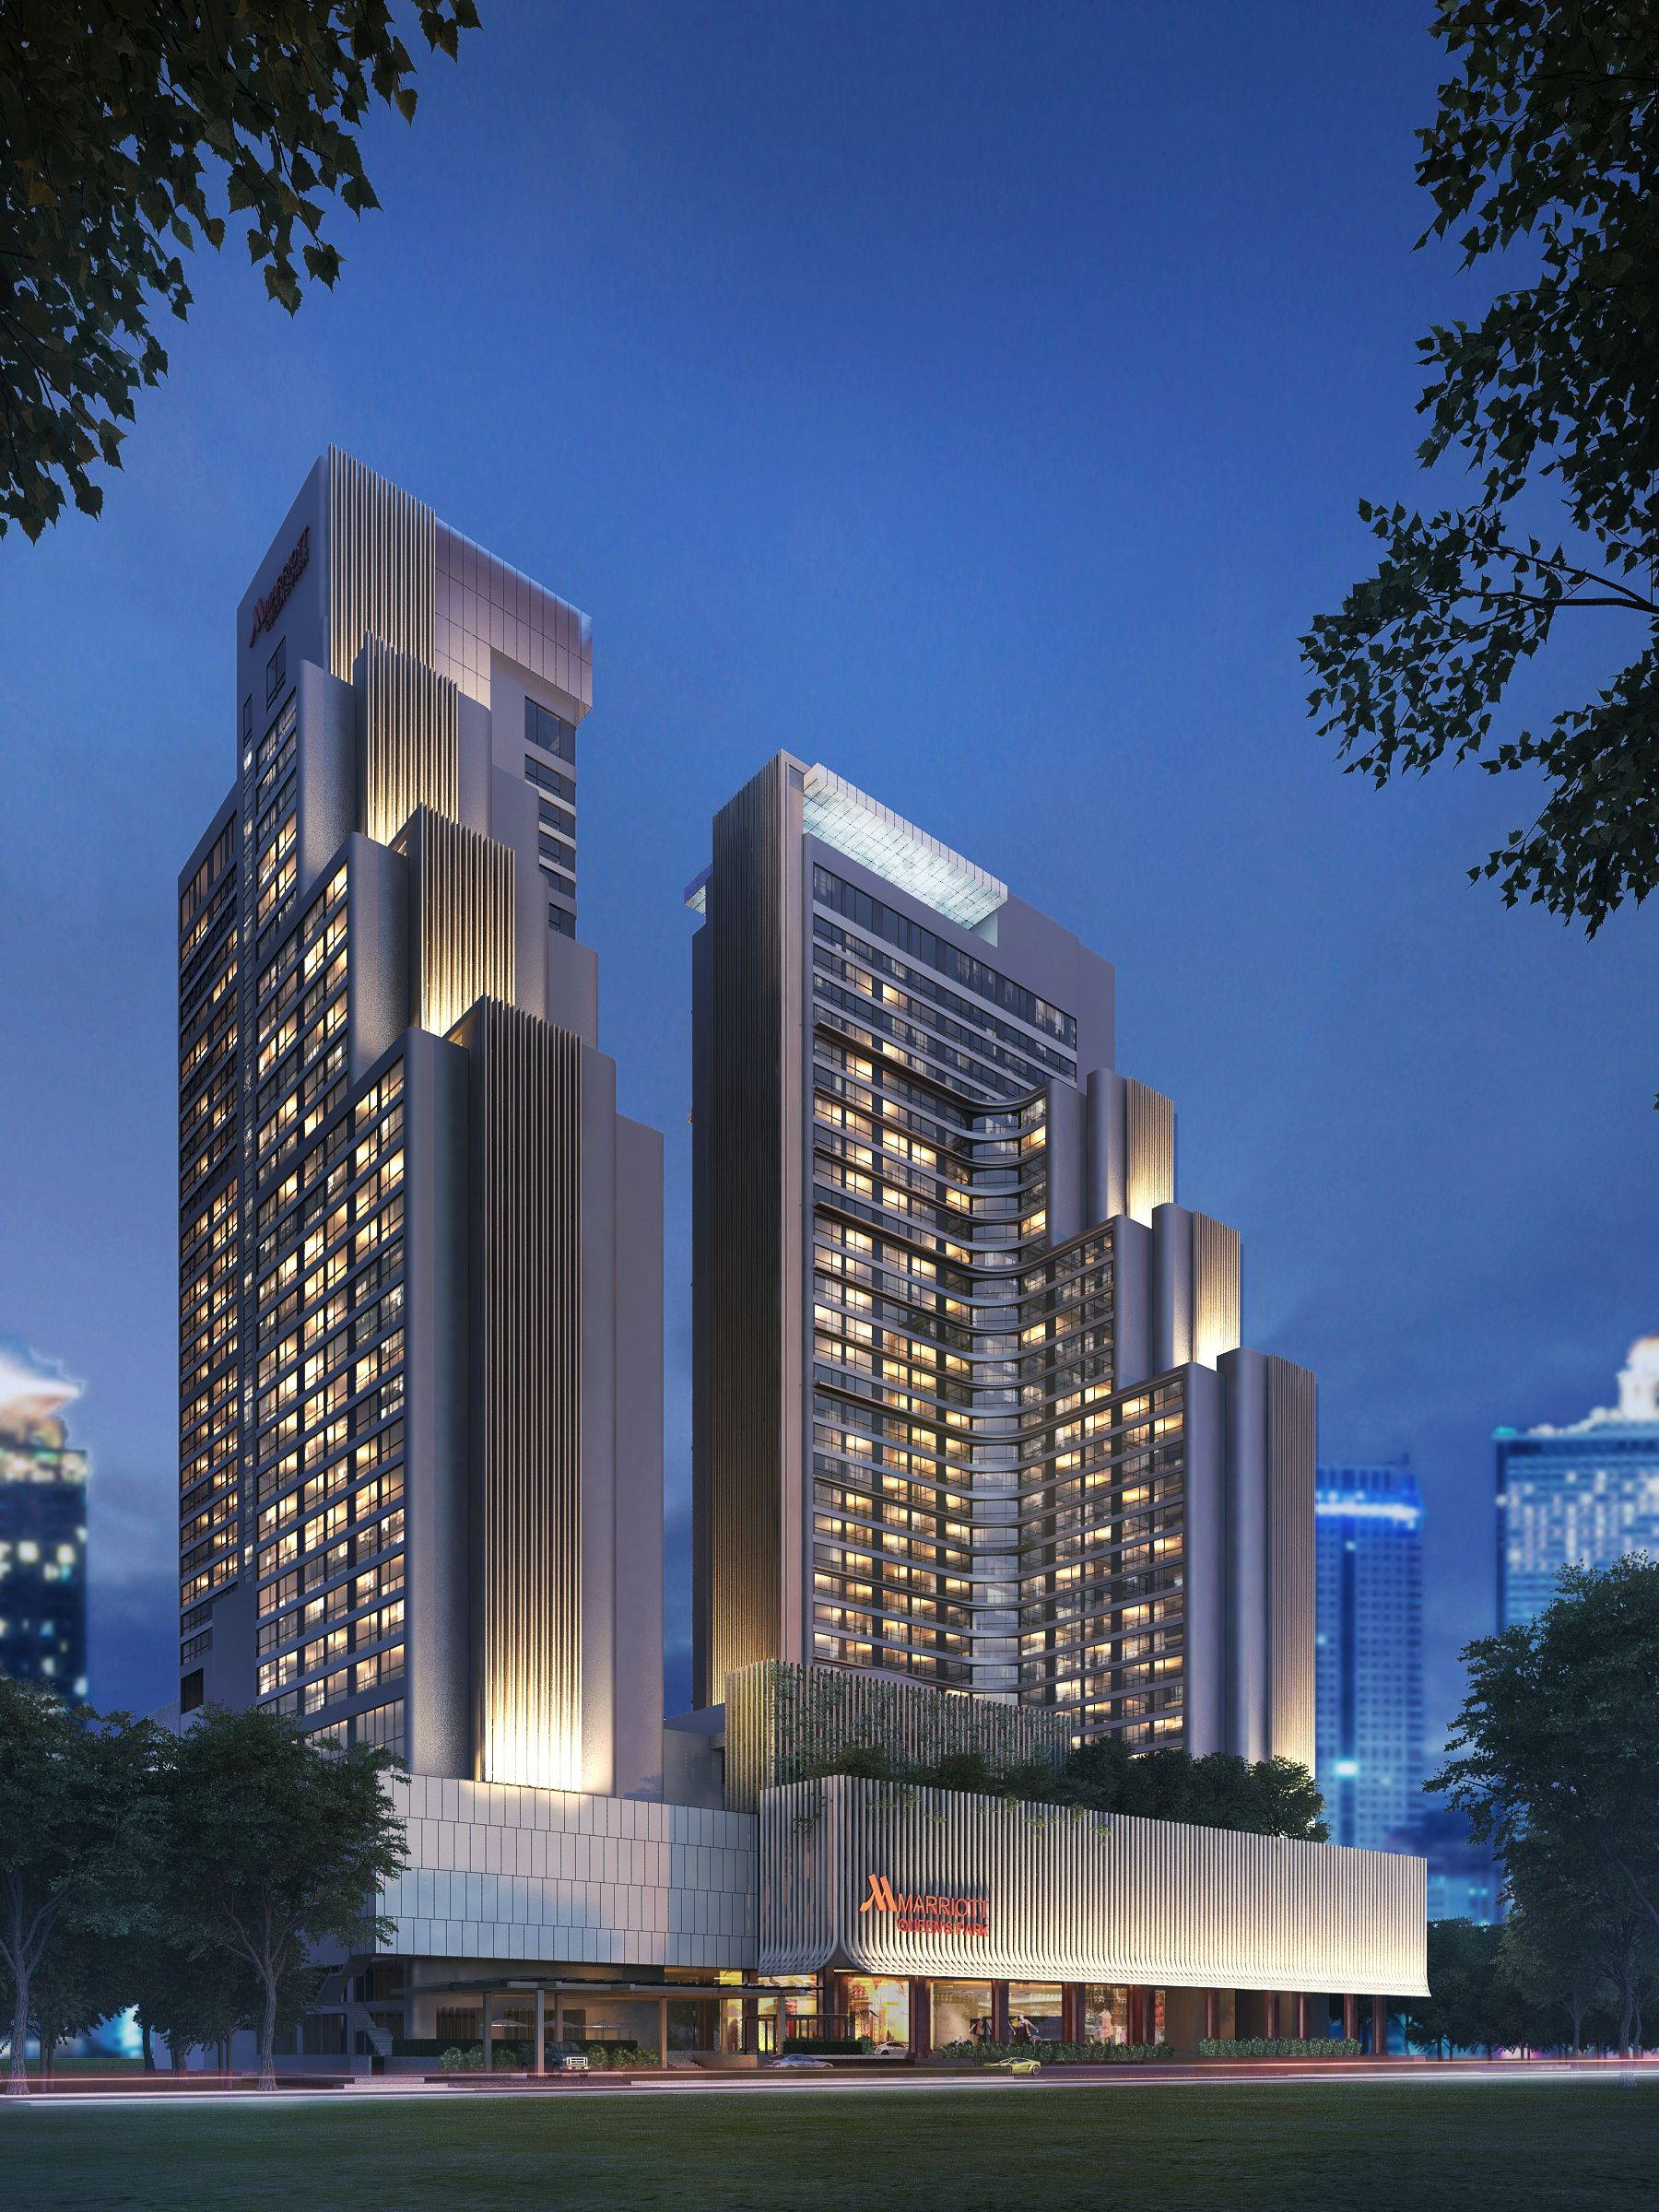 Peoject bangkok marriott hotel queen s park ex for Hotel design facade